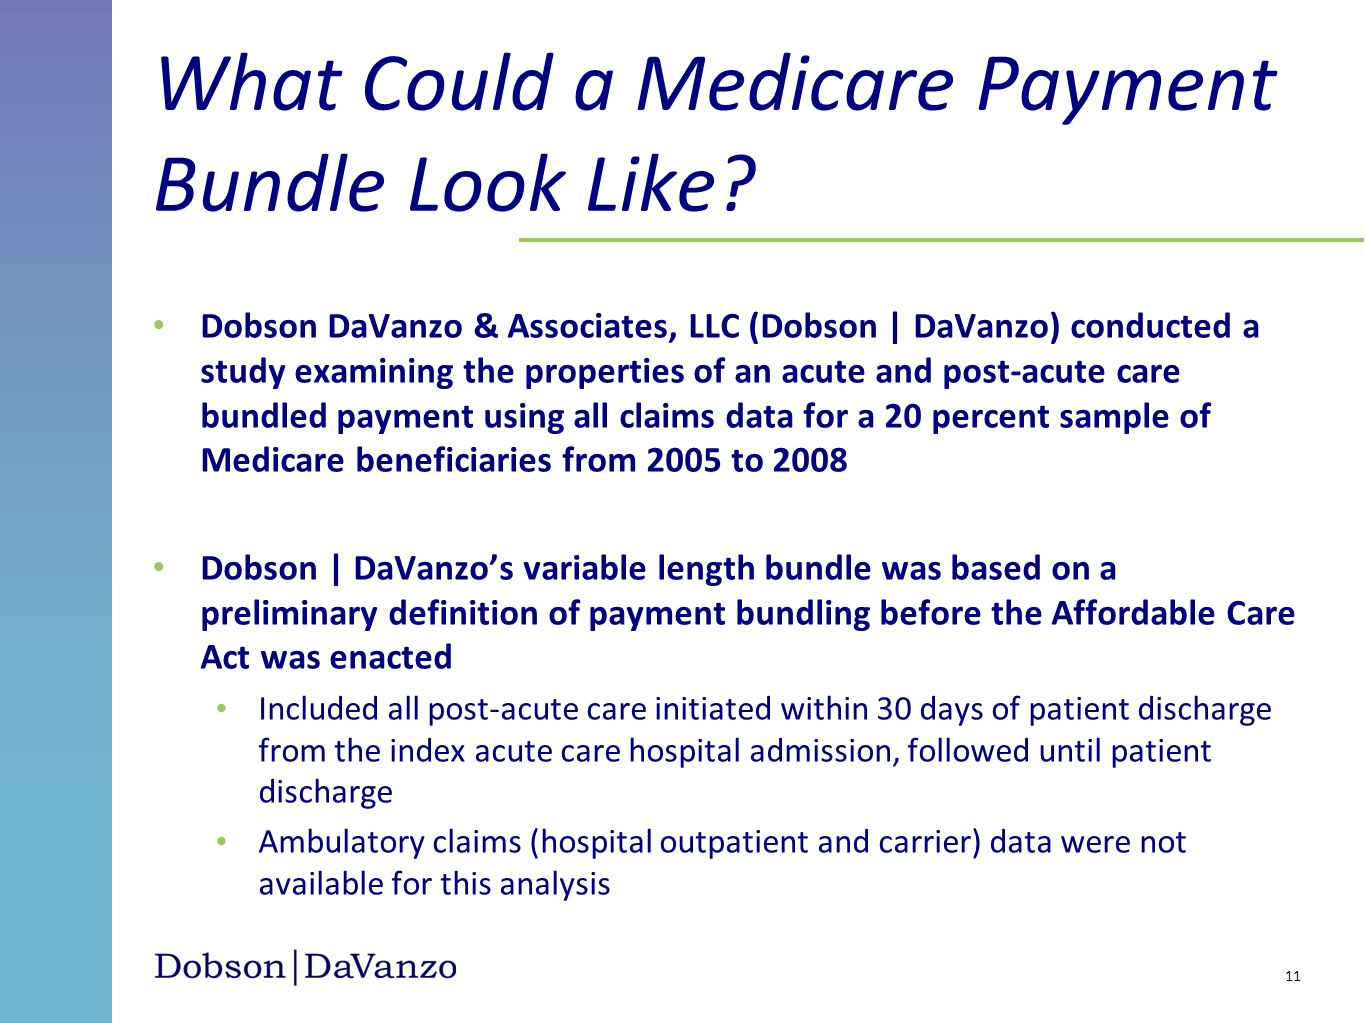 Dobson DaVanzo & Associates, LLC (Dobson | DaVanzo) conducted a study examining the properties of an acute and post-acute care bundled payment using a